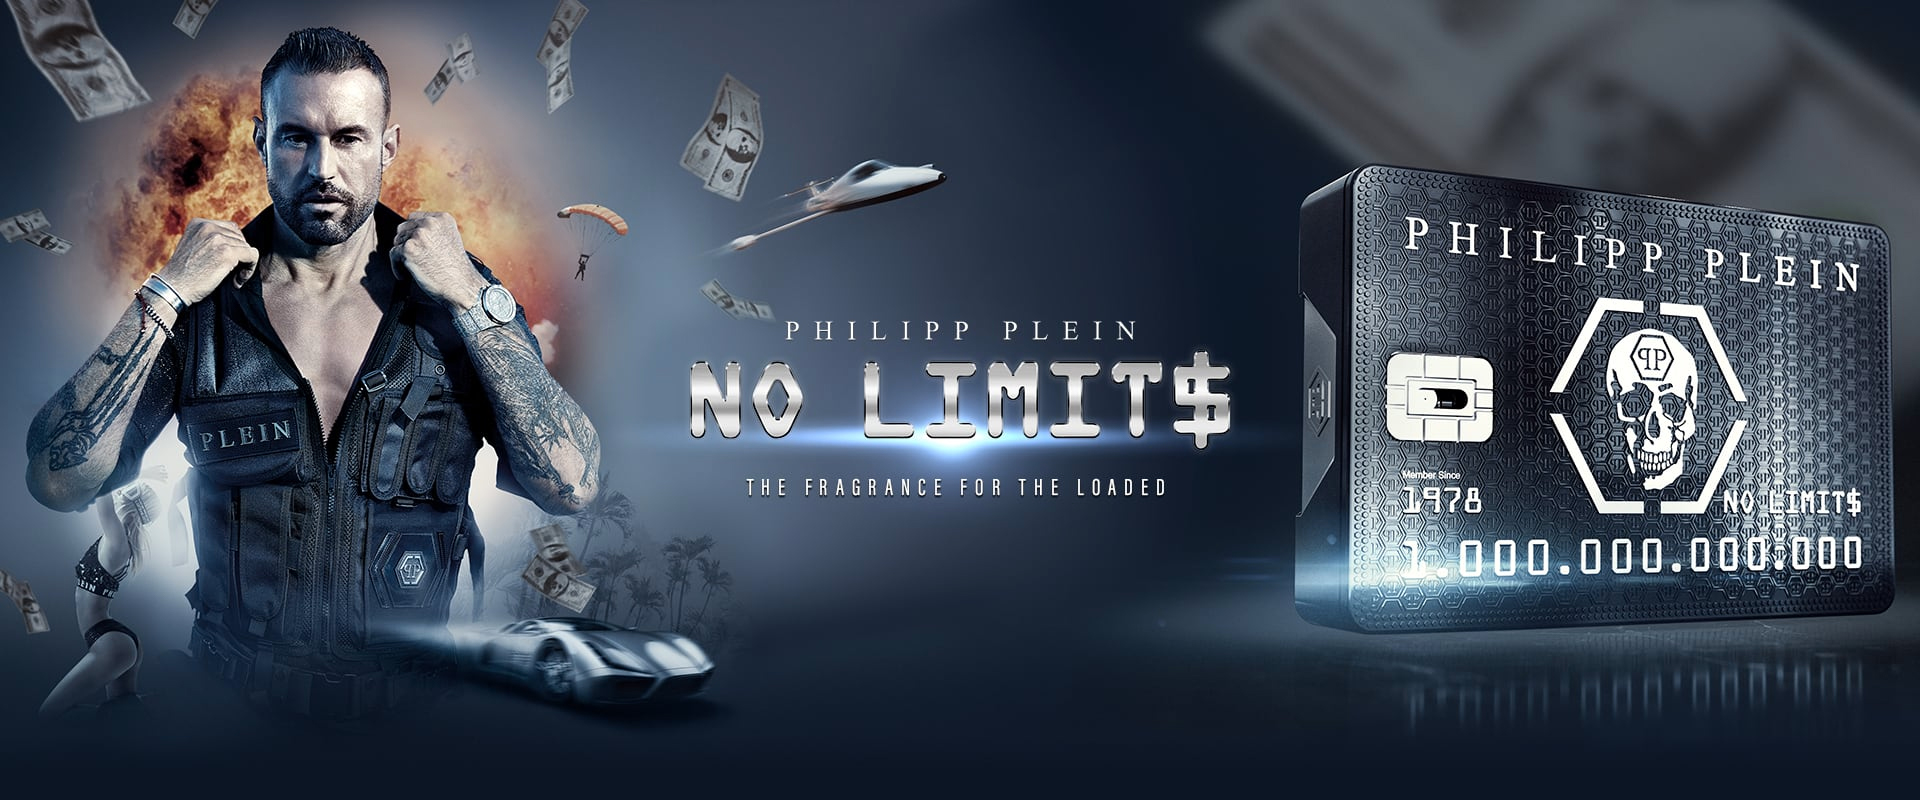 Philipp Plein parfum No limits